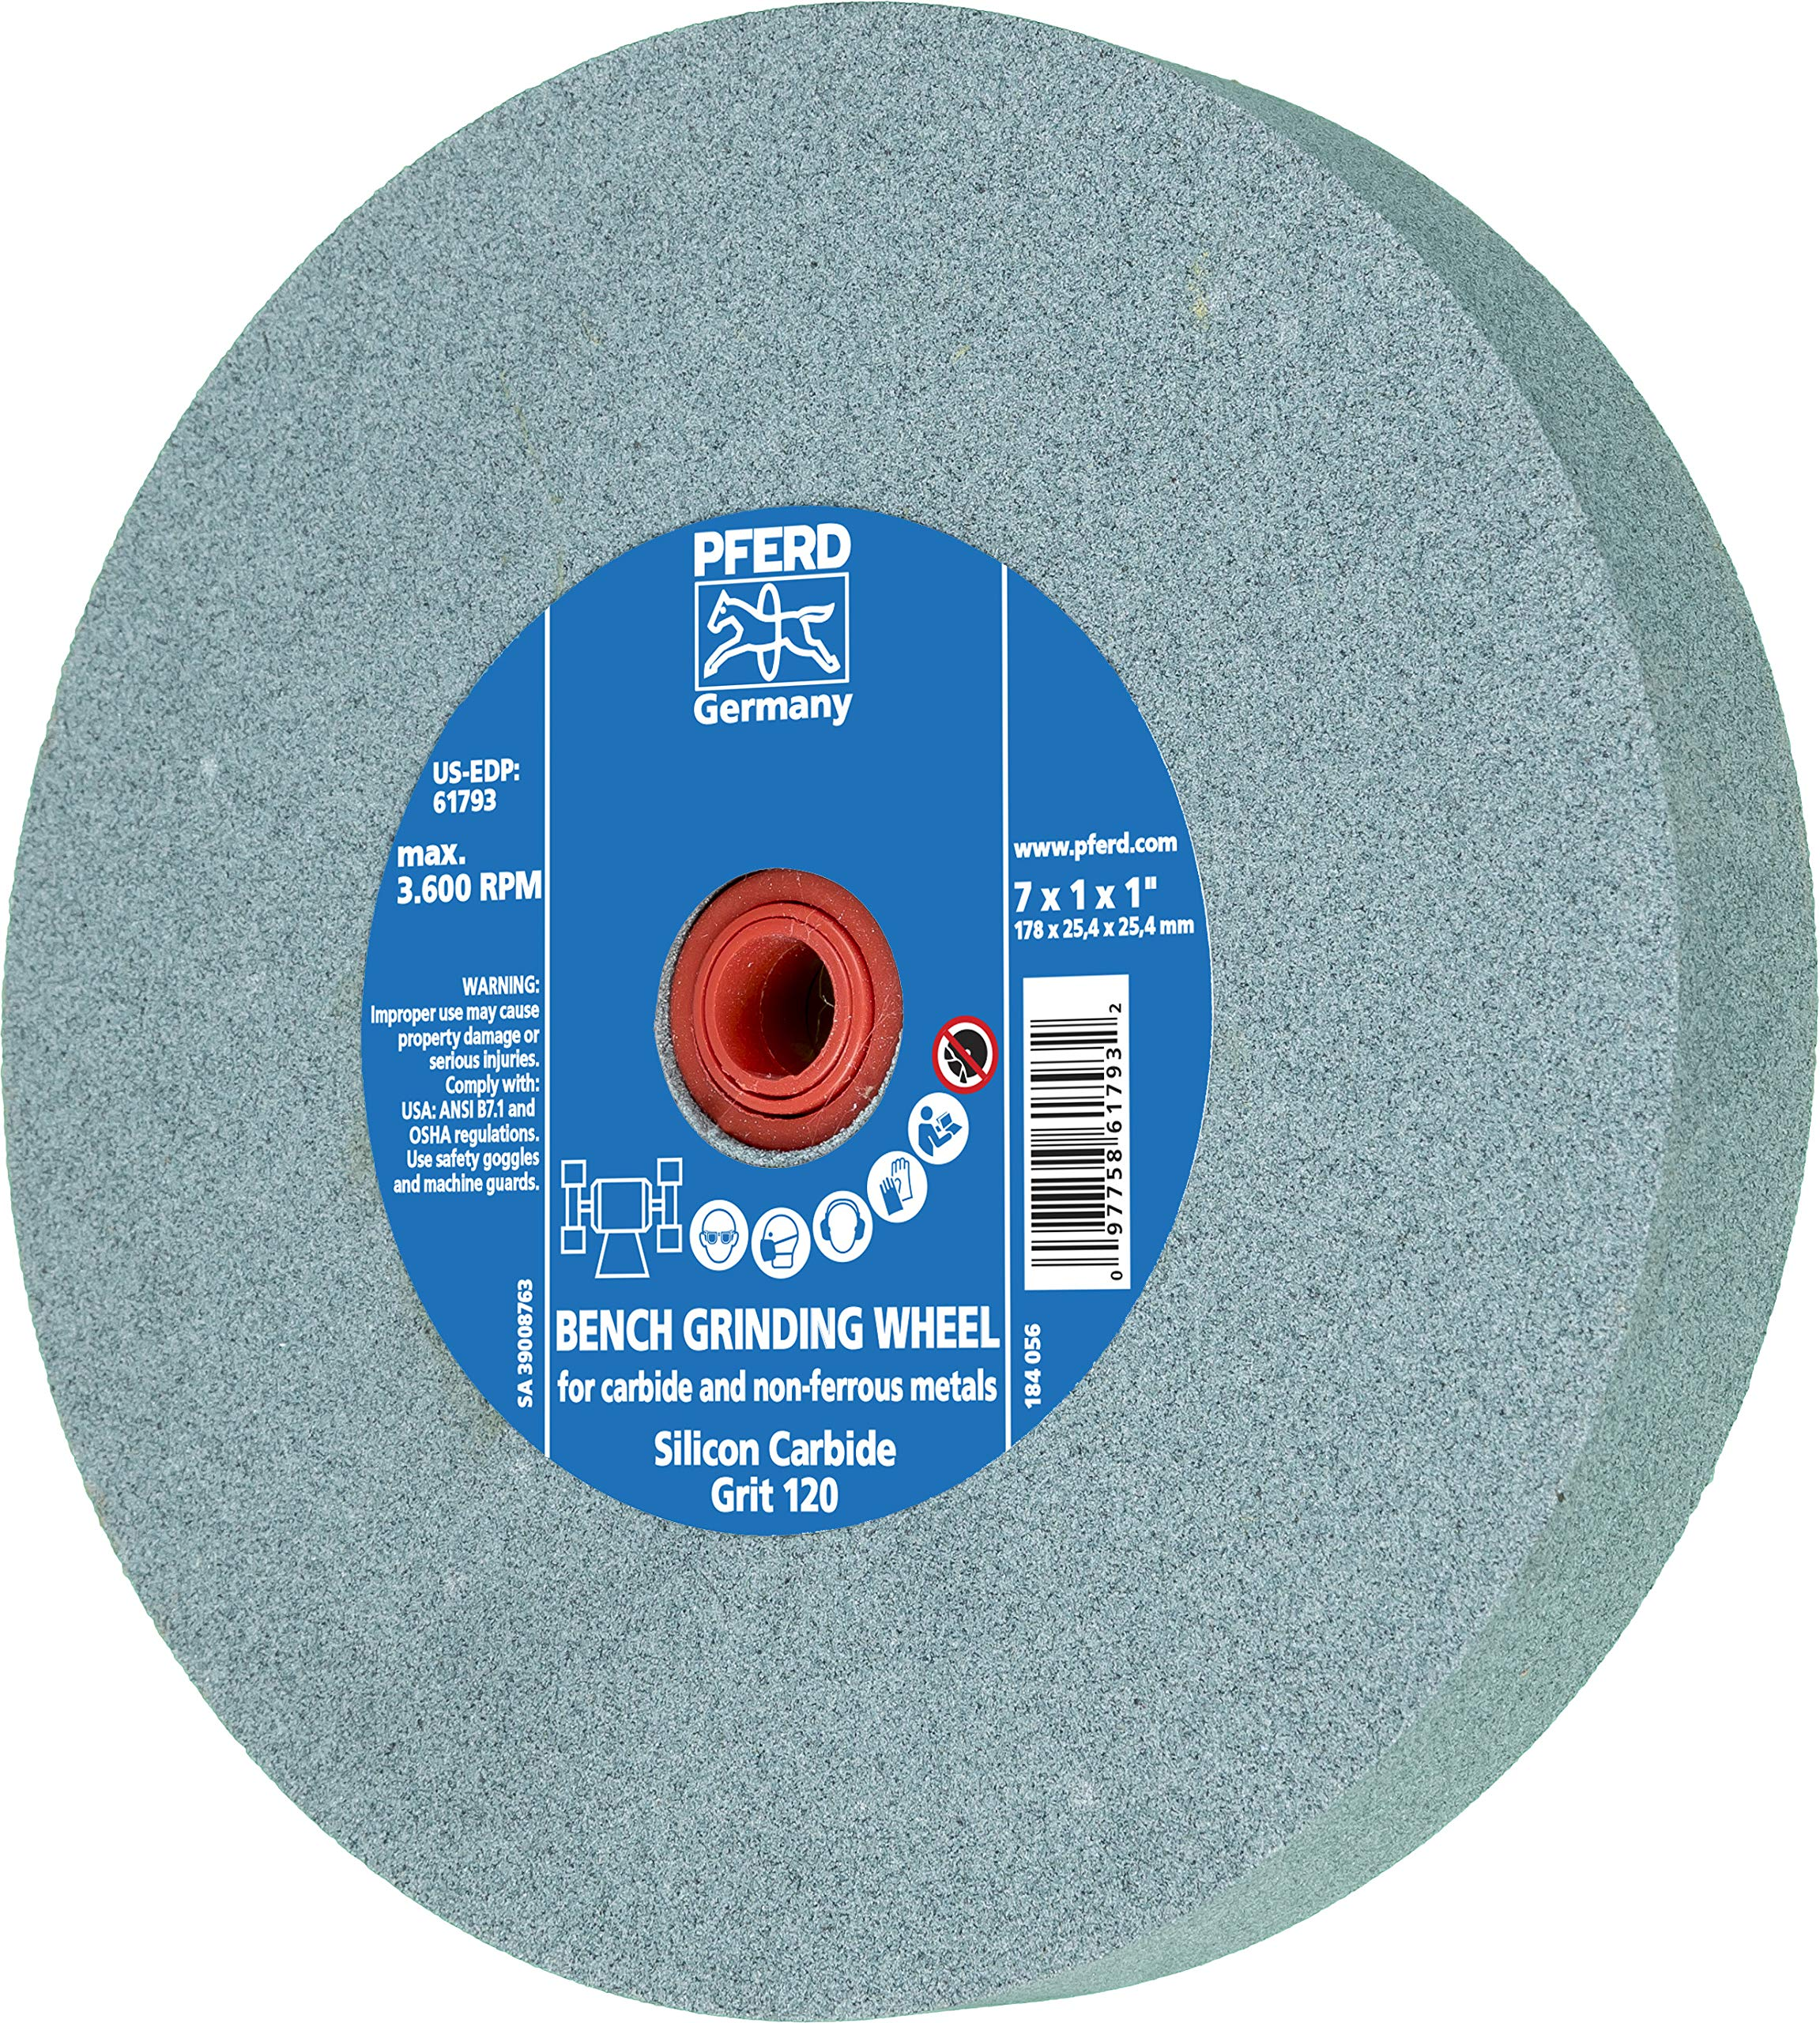 PFERD 61796 Bench Grinding Wheel, Silicon Carbide, 8'' Diameter, 1'' Thick, 1-1/4'' Arbor Hole, 120 Grit, 3600 Maximum RPM by Pferd